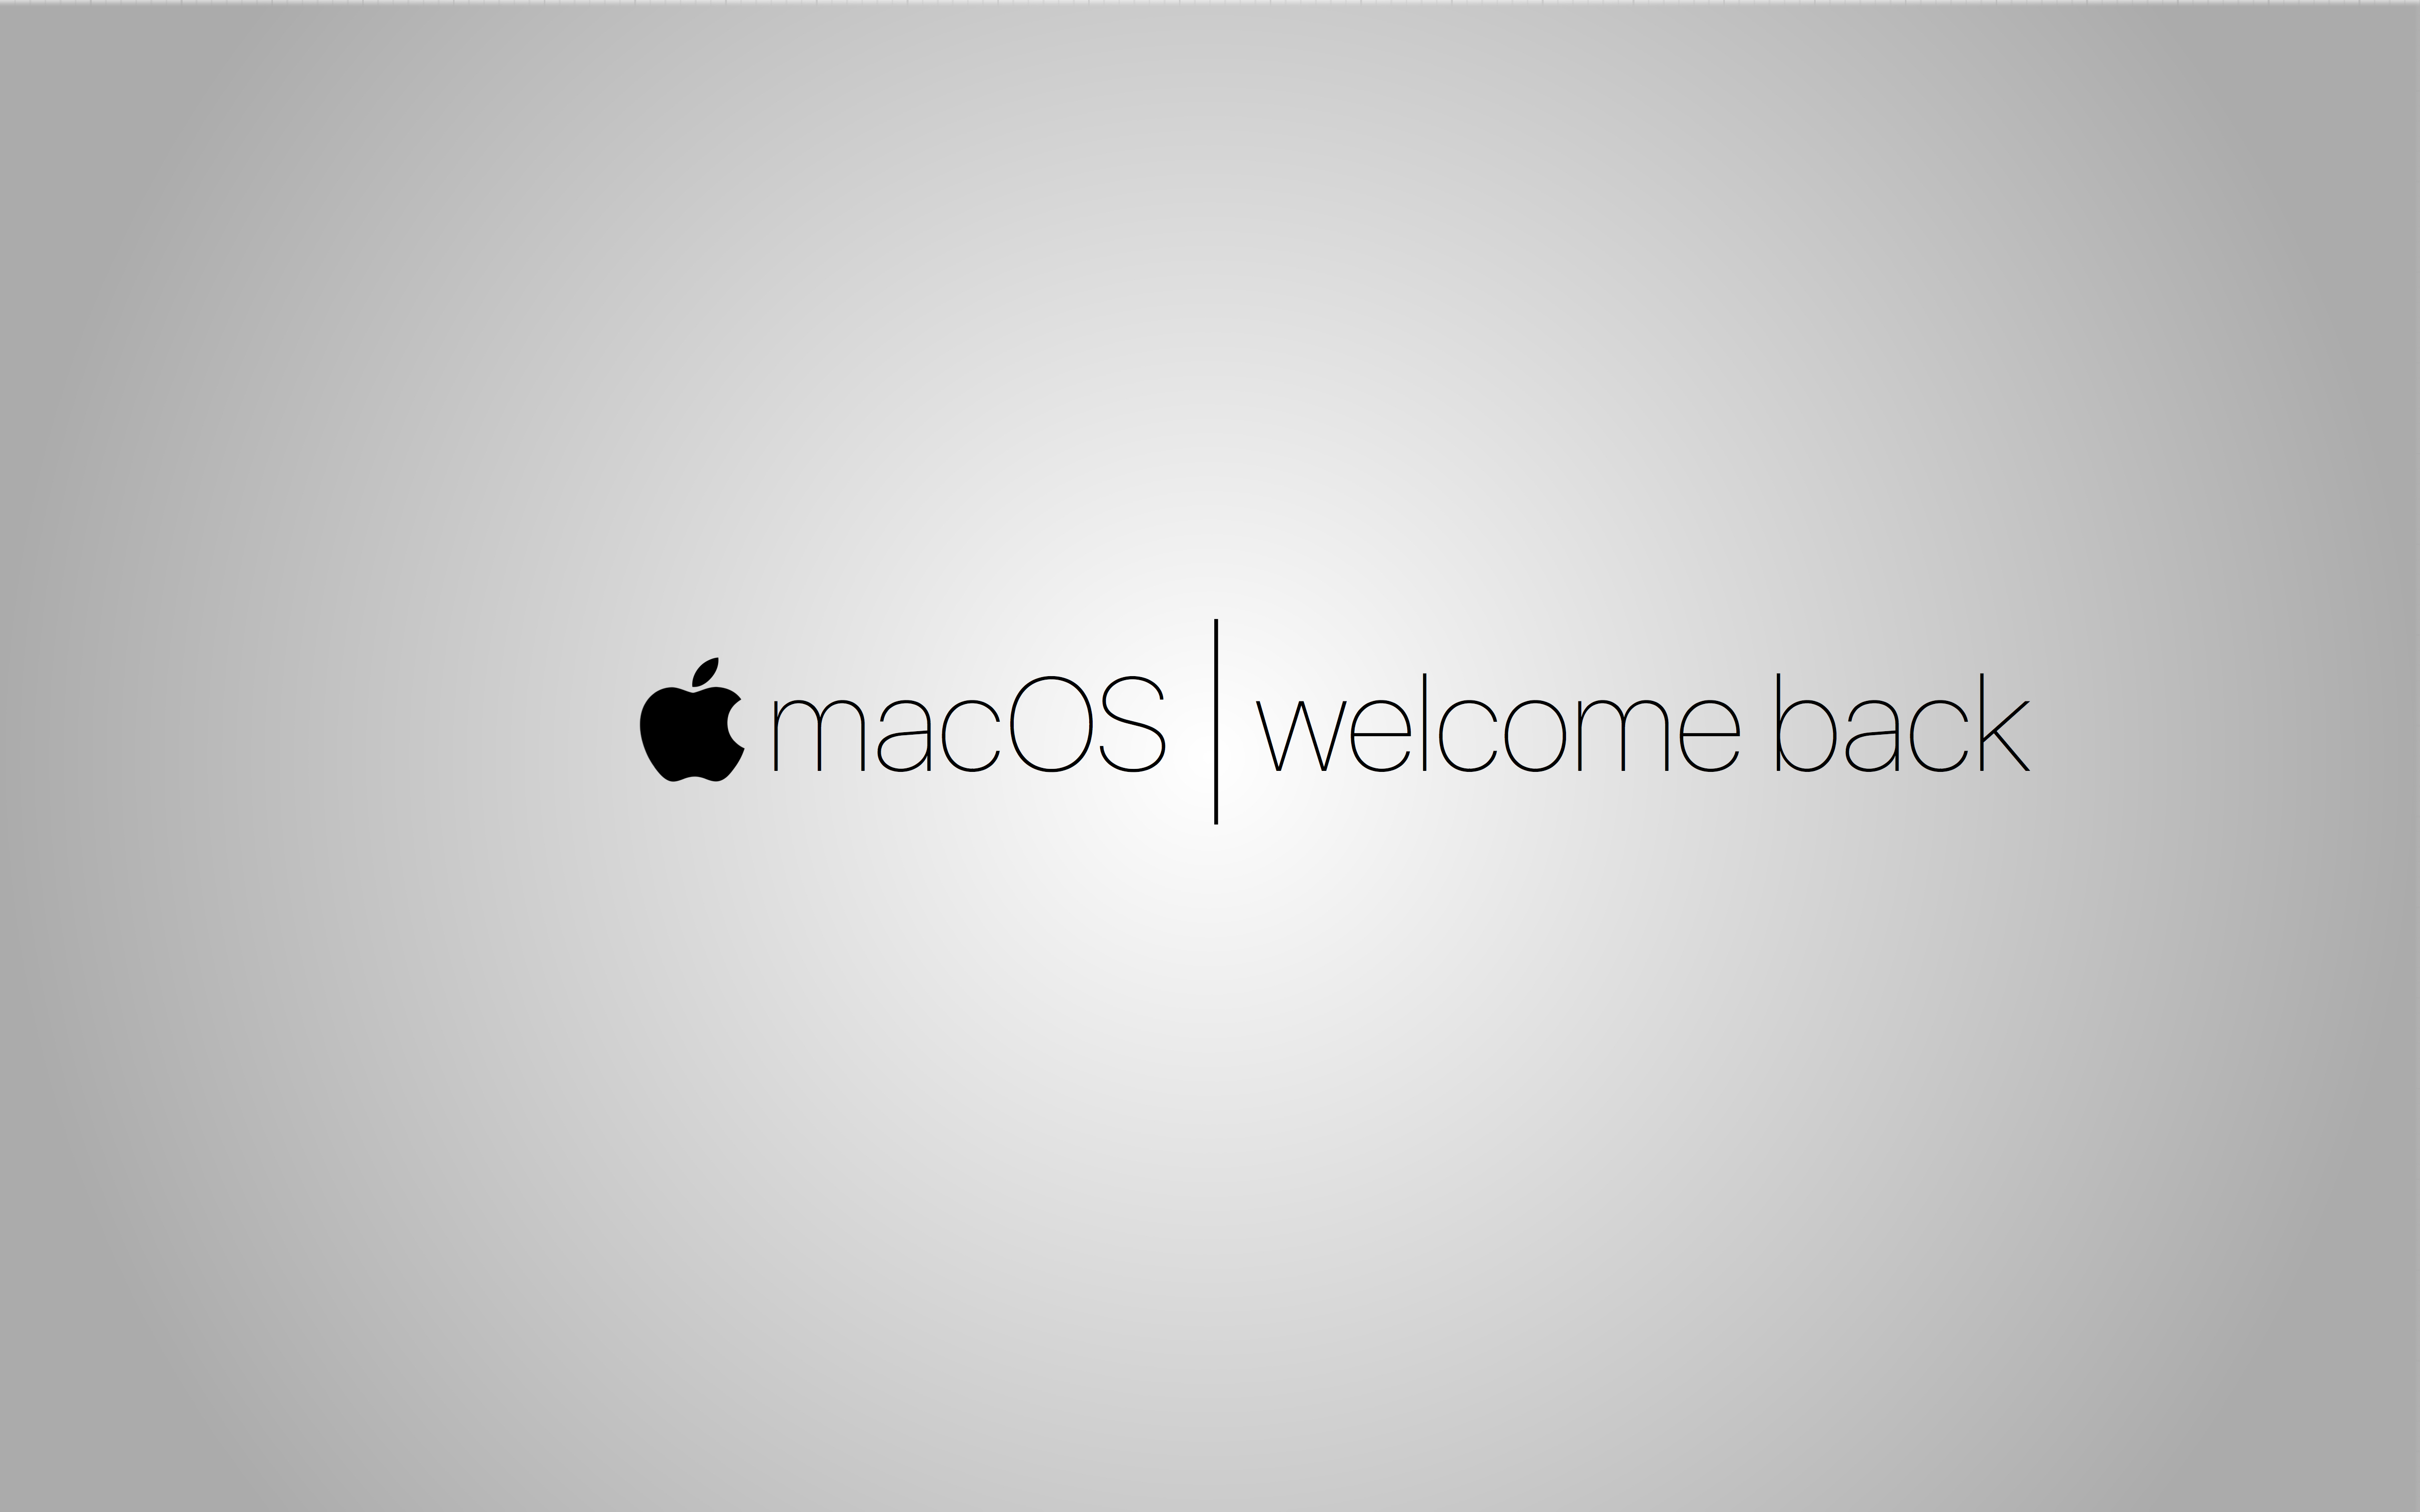 macOS | Welcome back - silver.jpg